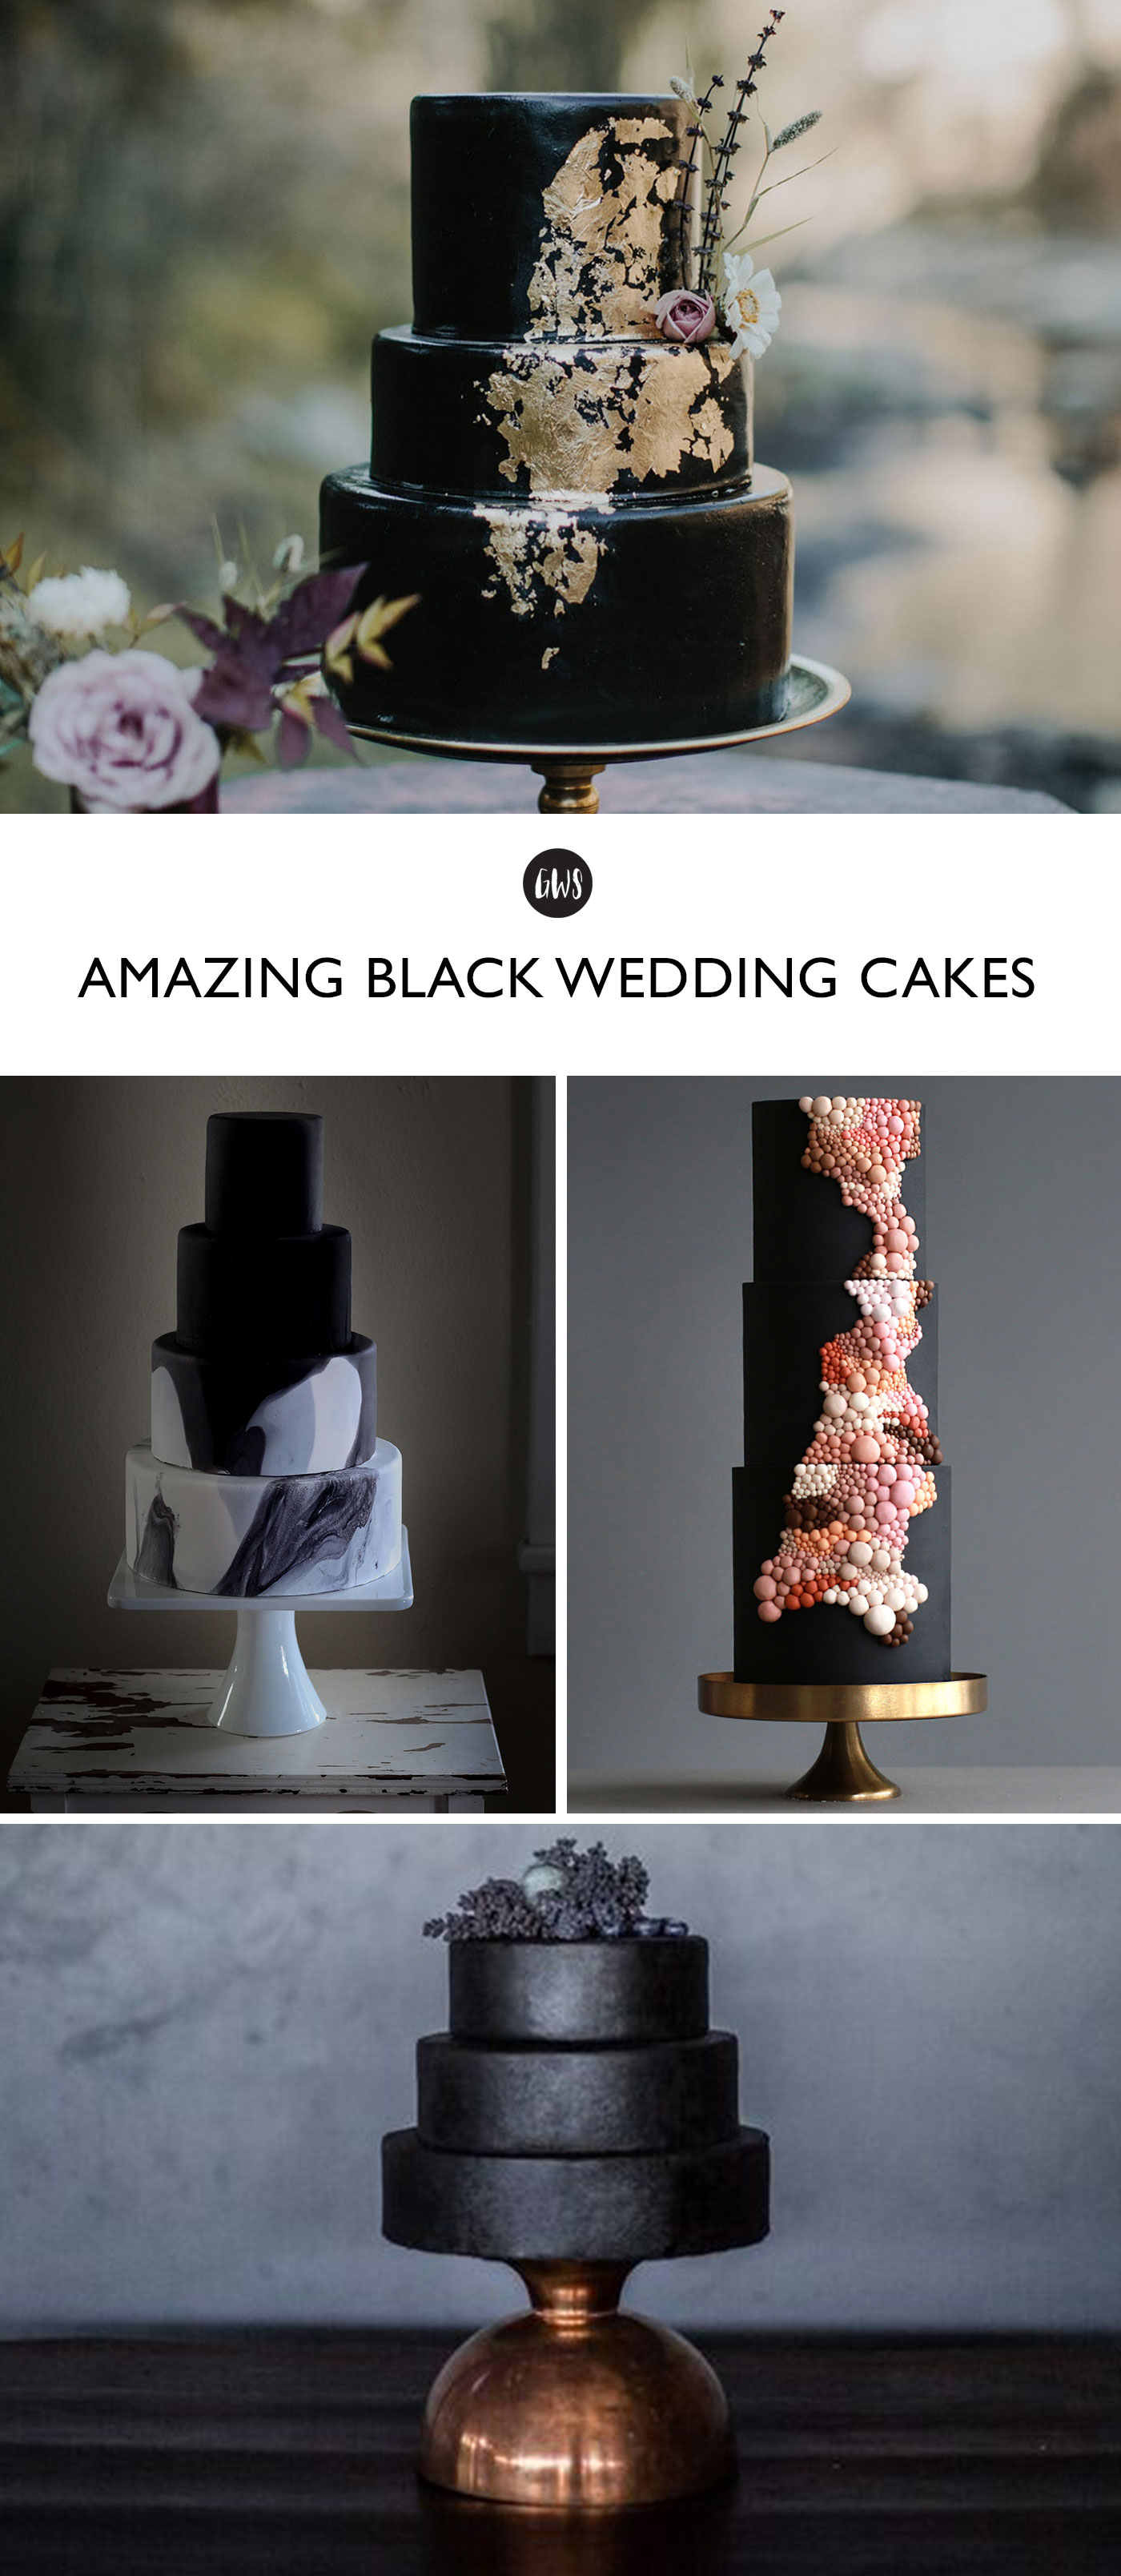 The most beautiful black wedding cakes!